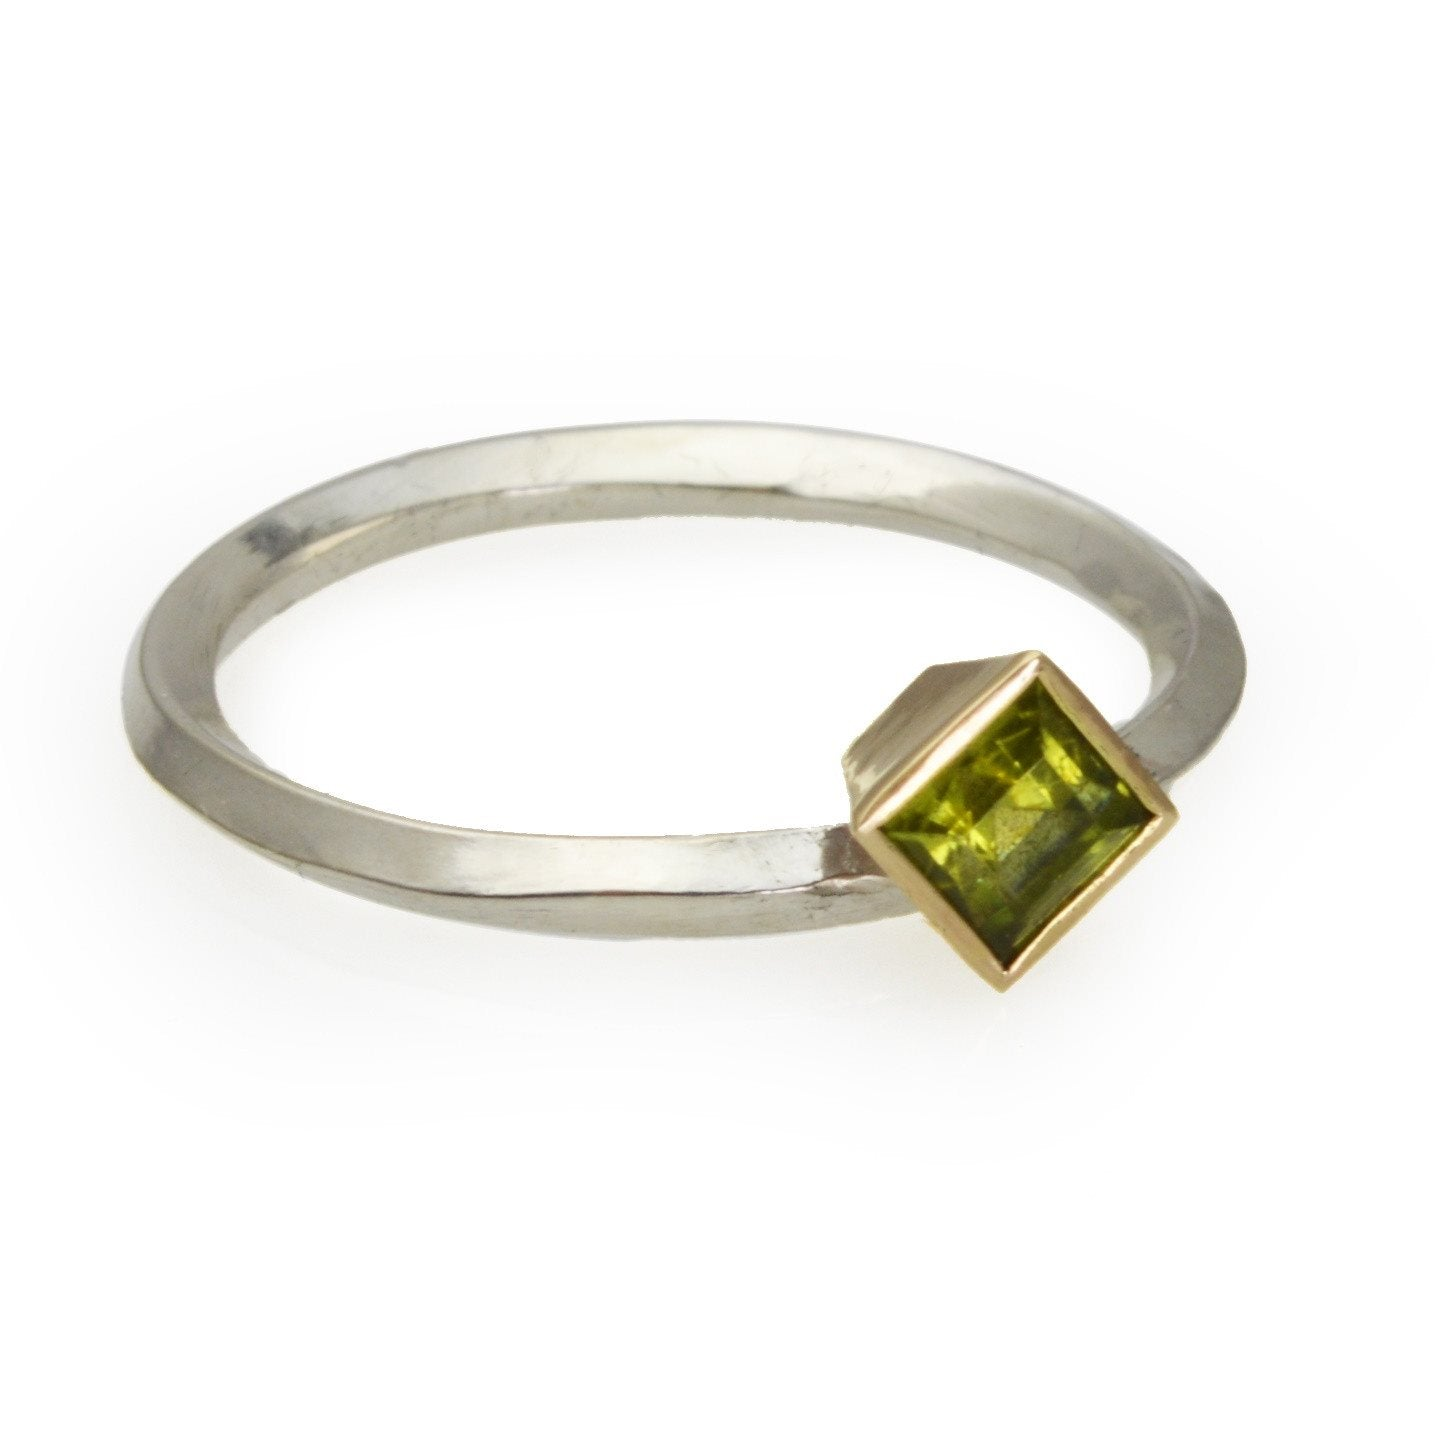 Square Peridot set in 14k gold on a Diamond Profile Sterling Silver Band